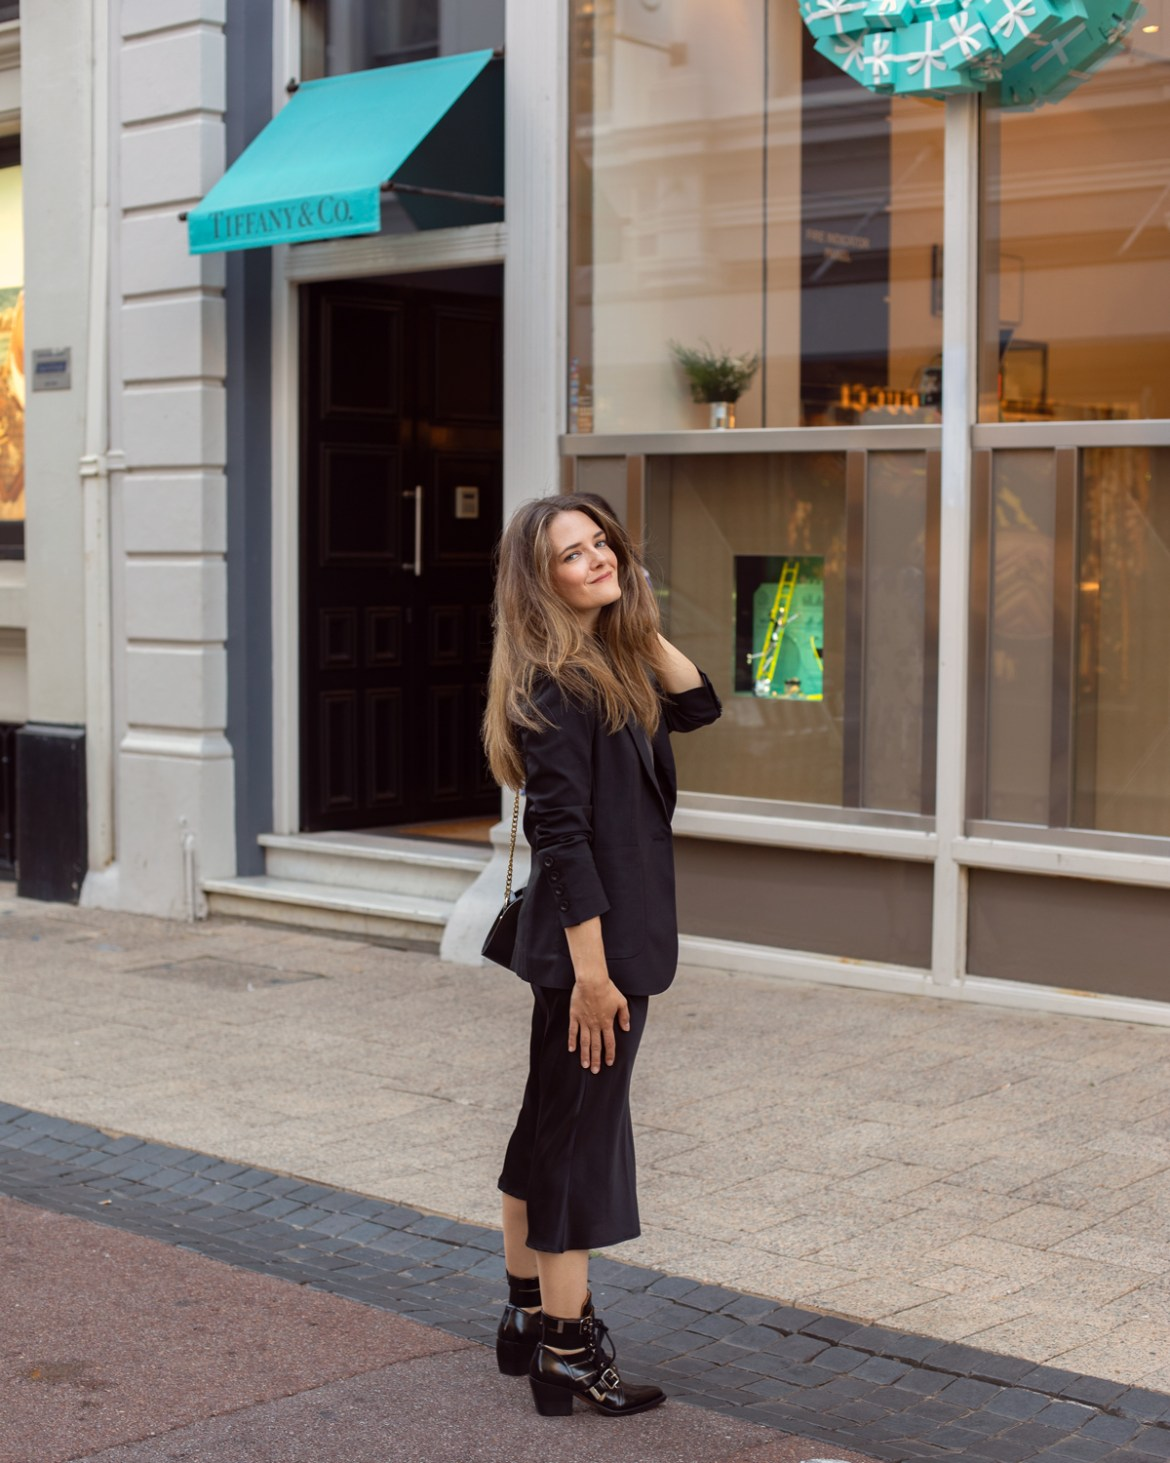 Anine Bing schoolboy blazer and slip midi skirt worn with Chloe Rylee boots and A.P.C half moon bag by Australian blogger Jenelle from Inspiring Wit